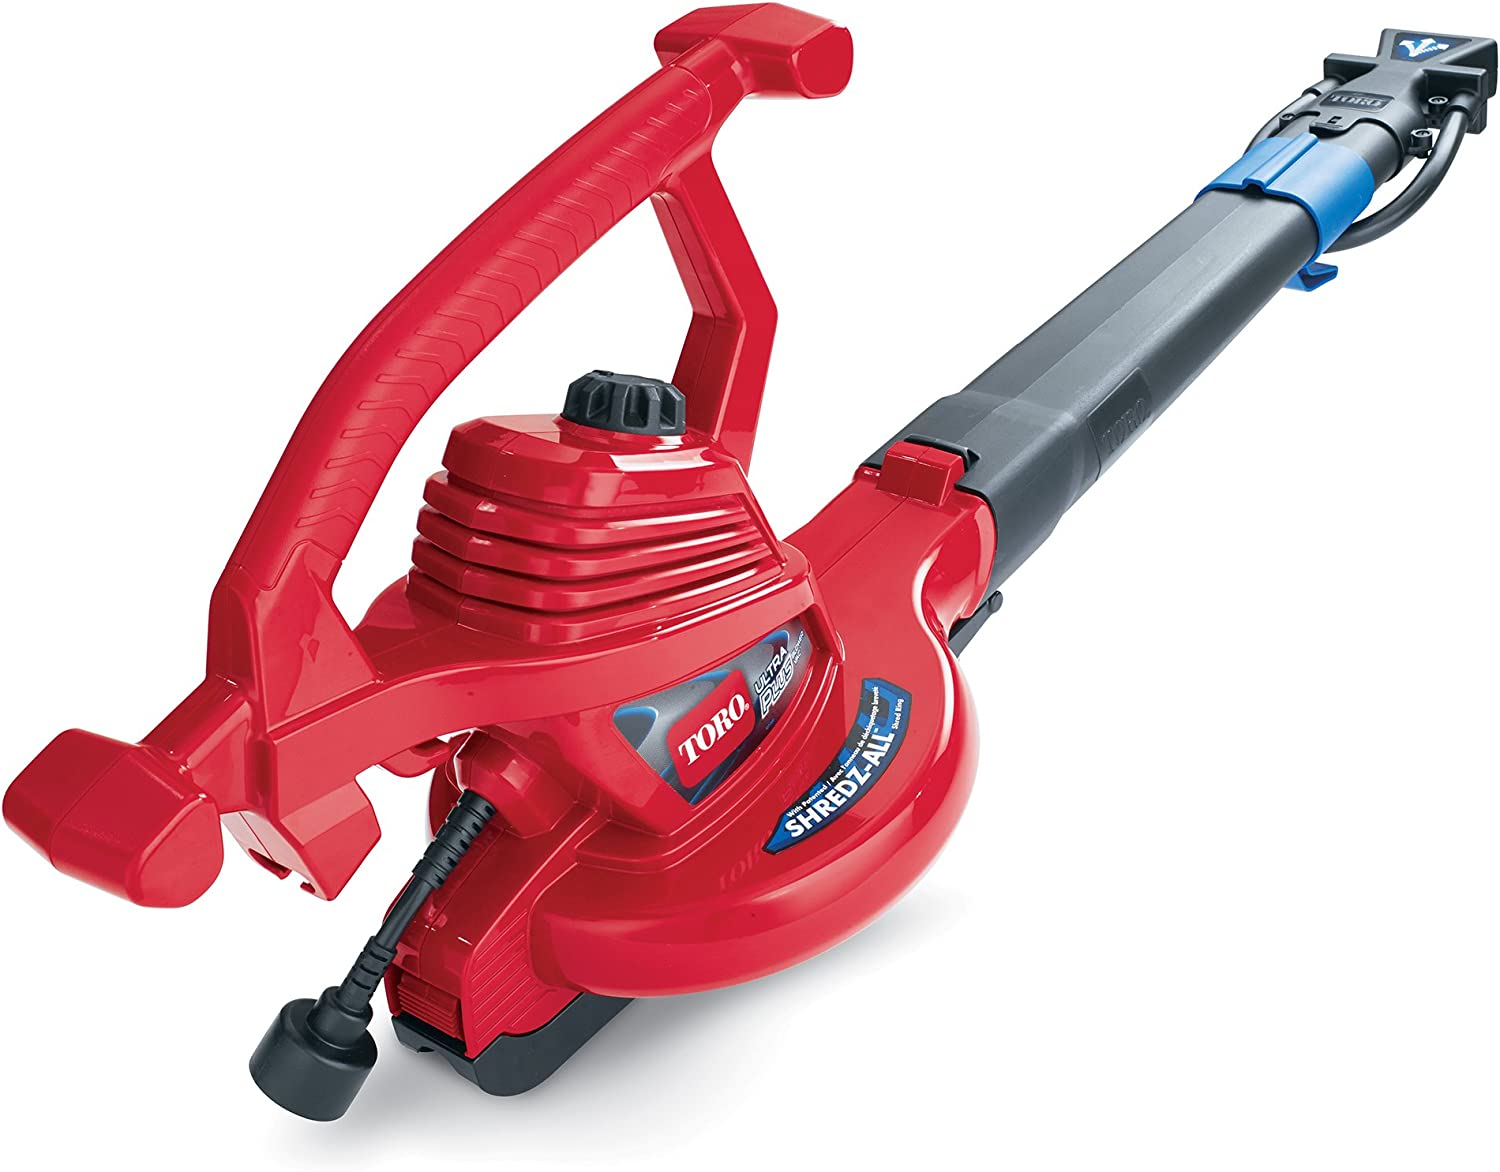 Toro 51621 UltraPlus Leaf Blower Vacuum, Variable-Speed (up to 250 mph) with Metal Impeller, 12 amp, Red : Garden & Outdoor